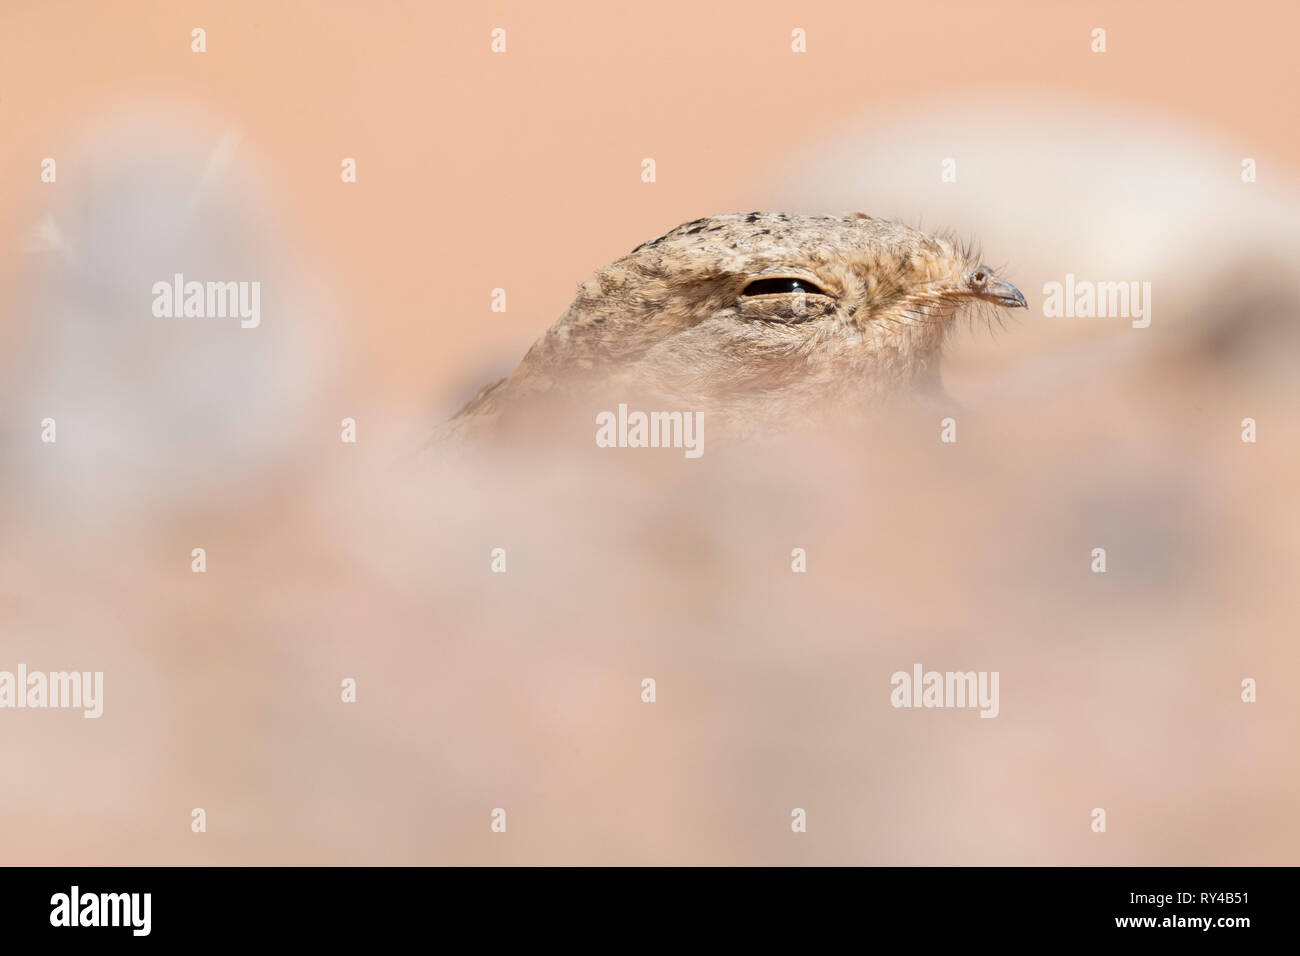 Egyptian Nightjar (Caprimulgus aegyptius saharae), close-up of an adult resting on the ground in Morocco - Stock Image